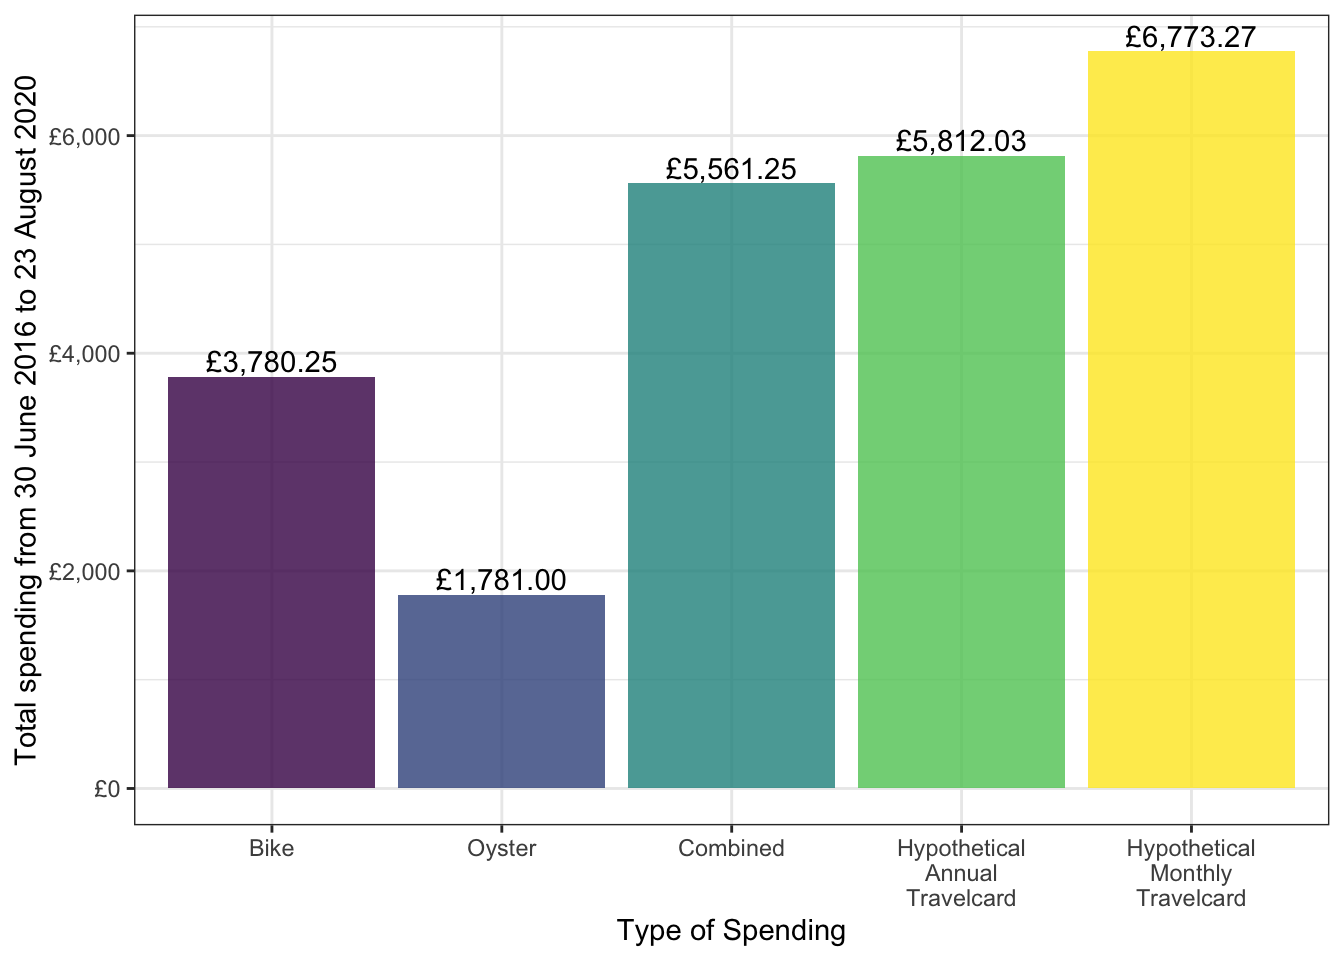 How much money can you save by riding your bike?